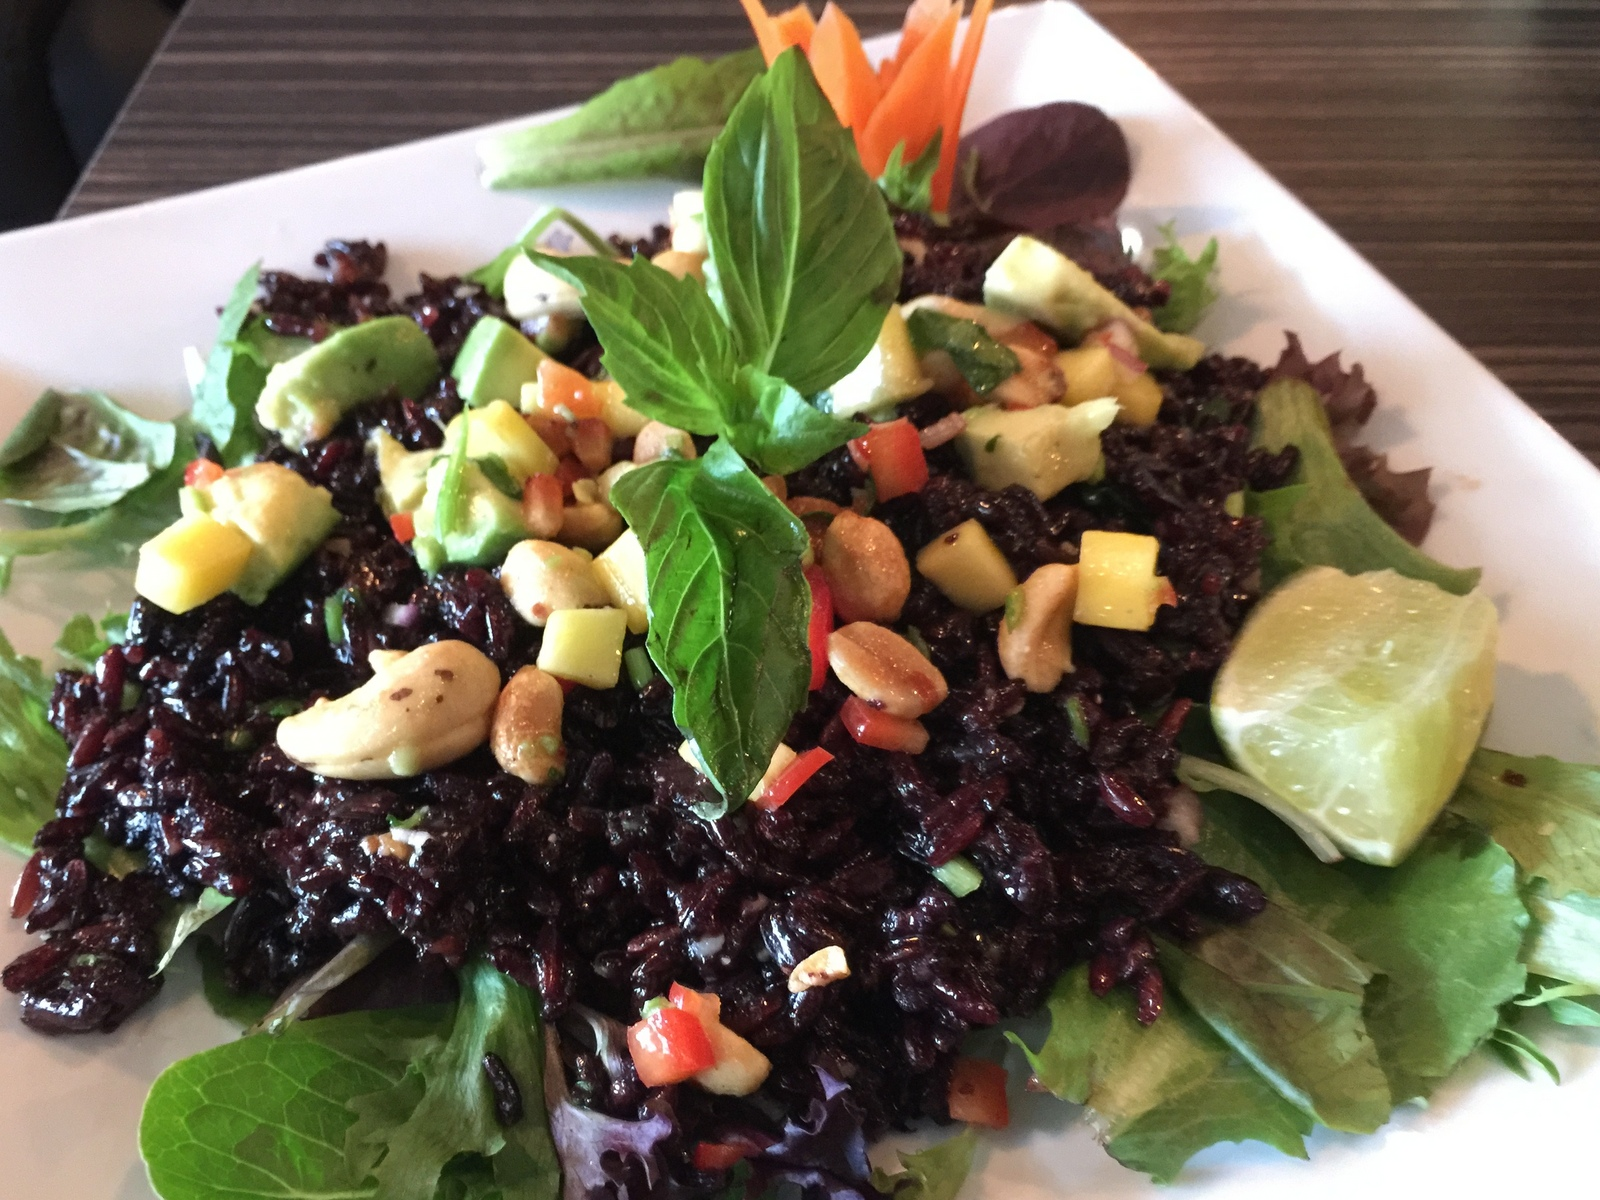 Black rice salad with avocado, mango and cashews at Sun Williamsville. (Andrew Galarneau/Buffalo News)